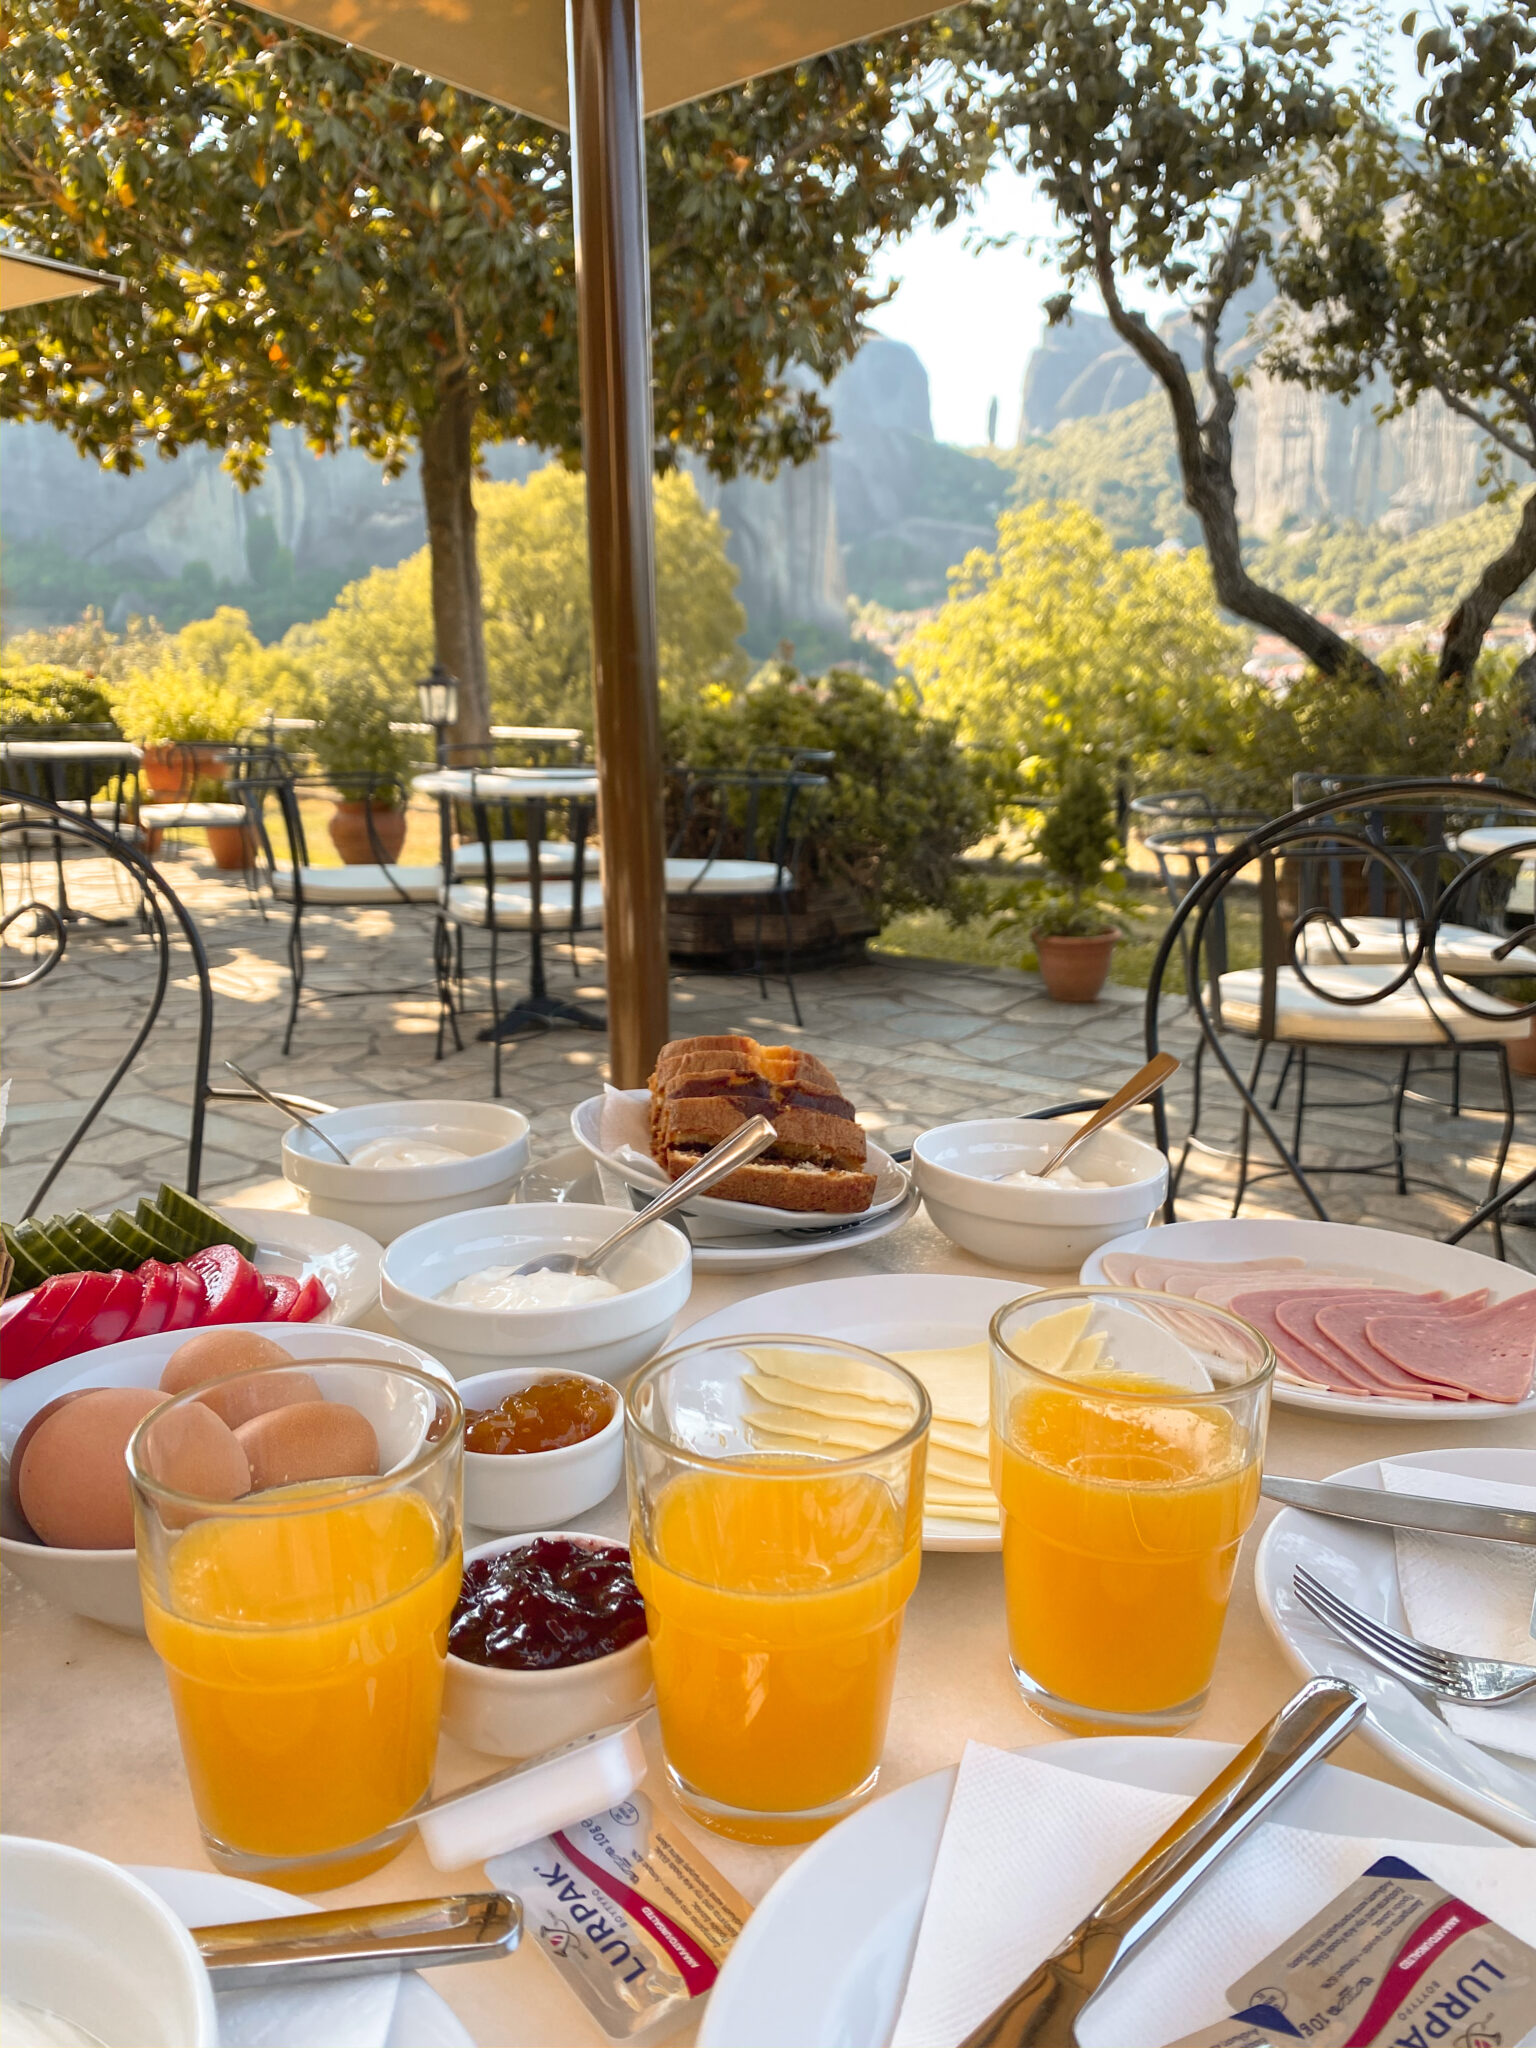 Breakfast is served in the courtyard of the hotel with the most beautiful view of Kalambaka.